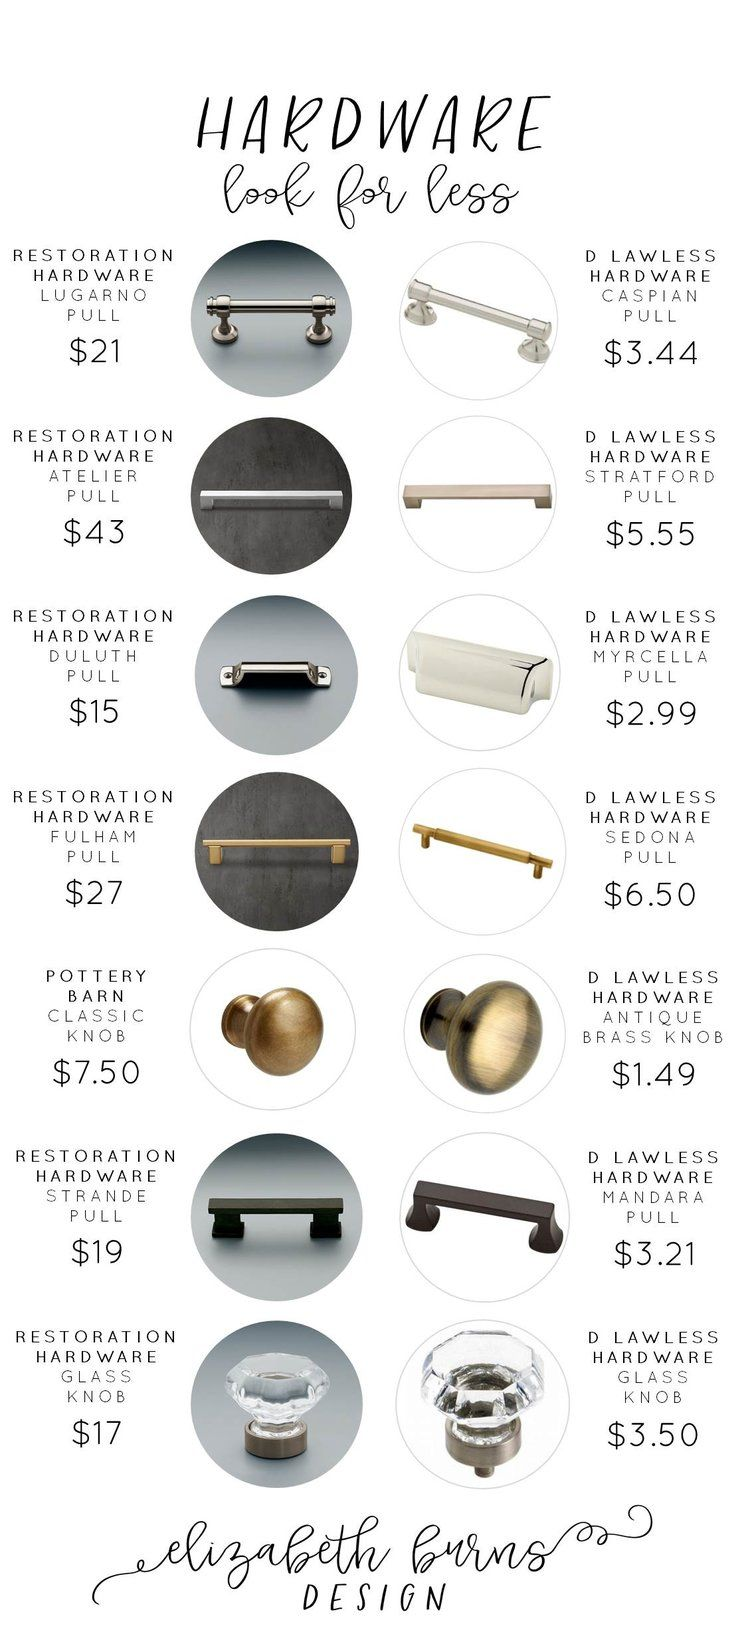 Hardware to go with Brass Hinges & Other Affordable Options